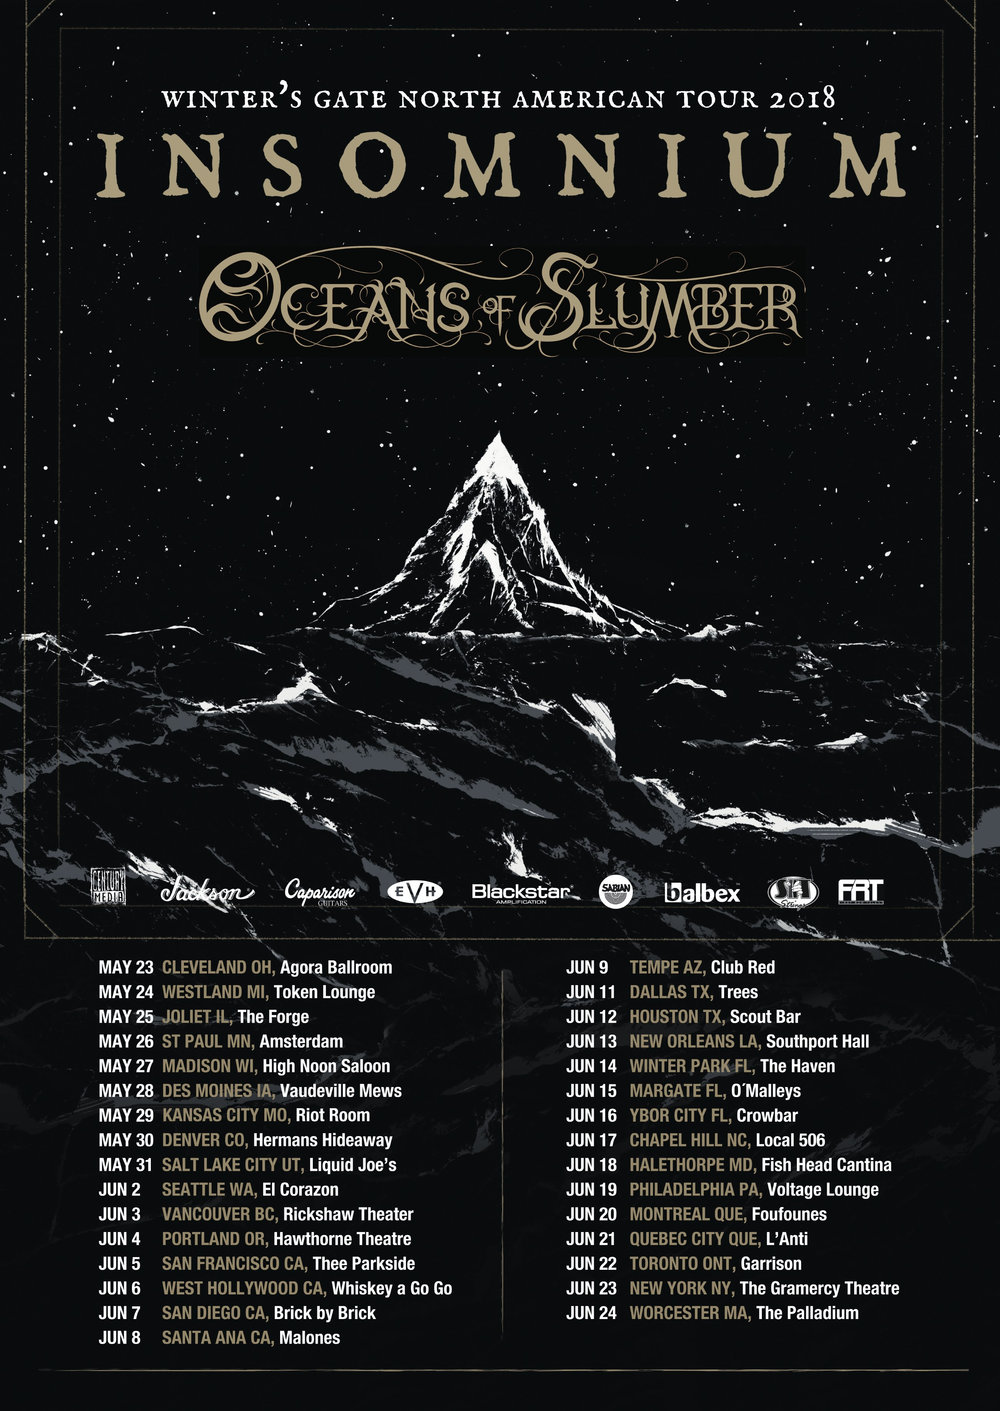 "Houston-based progressive metal outfit,  OCEANS OF SLUMBER , are excited to announce they will act as direct support to Finnish melodic death metallists' INSOMNIUM on their upcoming North American tour from May 23 to June 24. The band were also recently added to the line-up for the prestigious ProgPower USA XIX Metal Festival taking place on September 6 in Atlanta, GA. A listing of all upcoming dates, including their upcoming April jaunt across Europe with Epica and Myrkur, can be found listed at the bottom of this page.   Hailed as ""one of the most exciting bands in the prog metal scene today"" (ItDjents),  OCEANS OF SLUMBER 's third full-length album, ""The Banished Heart"", has been rousing critics since it's release earlier this month via  CENTURY MEDIA RECORDS  garnering several high-rated reviews, including a 9/10 from Metal Injection who praised it's ""deep, steady, smoky vocals and thick thoughtful riffs"" depicting it as ""an album burgeoning on timeless greatness"".   ""The Banished Heart"" Track Listing  1. The Decay Of Disregard (08:59) --  WATCH  2. Fleeting Vigilance (05:25) 3. At Dawn (08:30) 4. The Banished Heart (09:05) --  WATCH  5. The Watcher (2:25) 6. Etiolation (06:01) 7. A Path To Broken Stars (06:31) 8. Howl Of The Rougarou (05:02) 9. Her In The Distance (02:03) 10. No Color, No Light (07:17) --  WATCH  11. Wayfaring Stranger (3:41)   ""The Banished Heart"" is available now at:  https://OceansOfSlumber.lnk.to/TheBanishedHeart     OCEANS OF SLUMBER is:  Cammie Gilbert – Vocals Anthony Contreras – Guitar Sean Gary – Guitar Keegan Kelly – Bass Dobber Beverly – Drums   OCEANS OF SLUMBER online:   http://www.oceansofslumber.com   https://www.facebook.com/oceansofslumber   https://twitter.com/oceansofslumber   https://instagram.com/oceansofslumber"